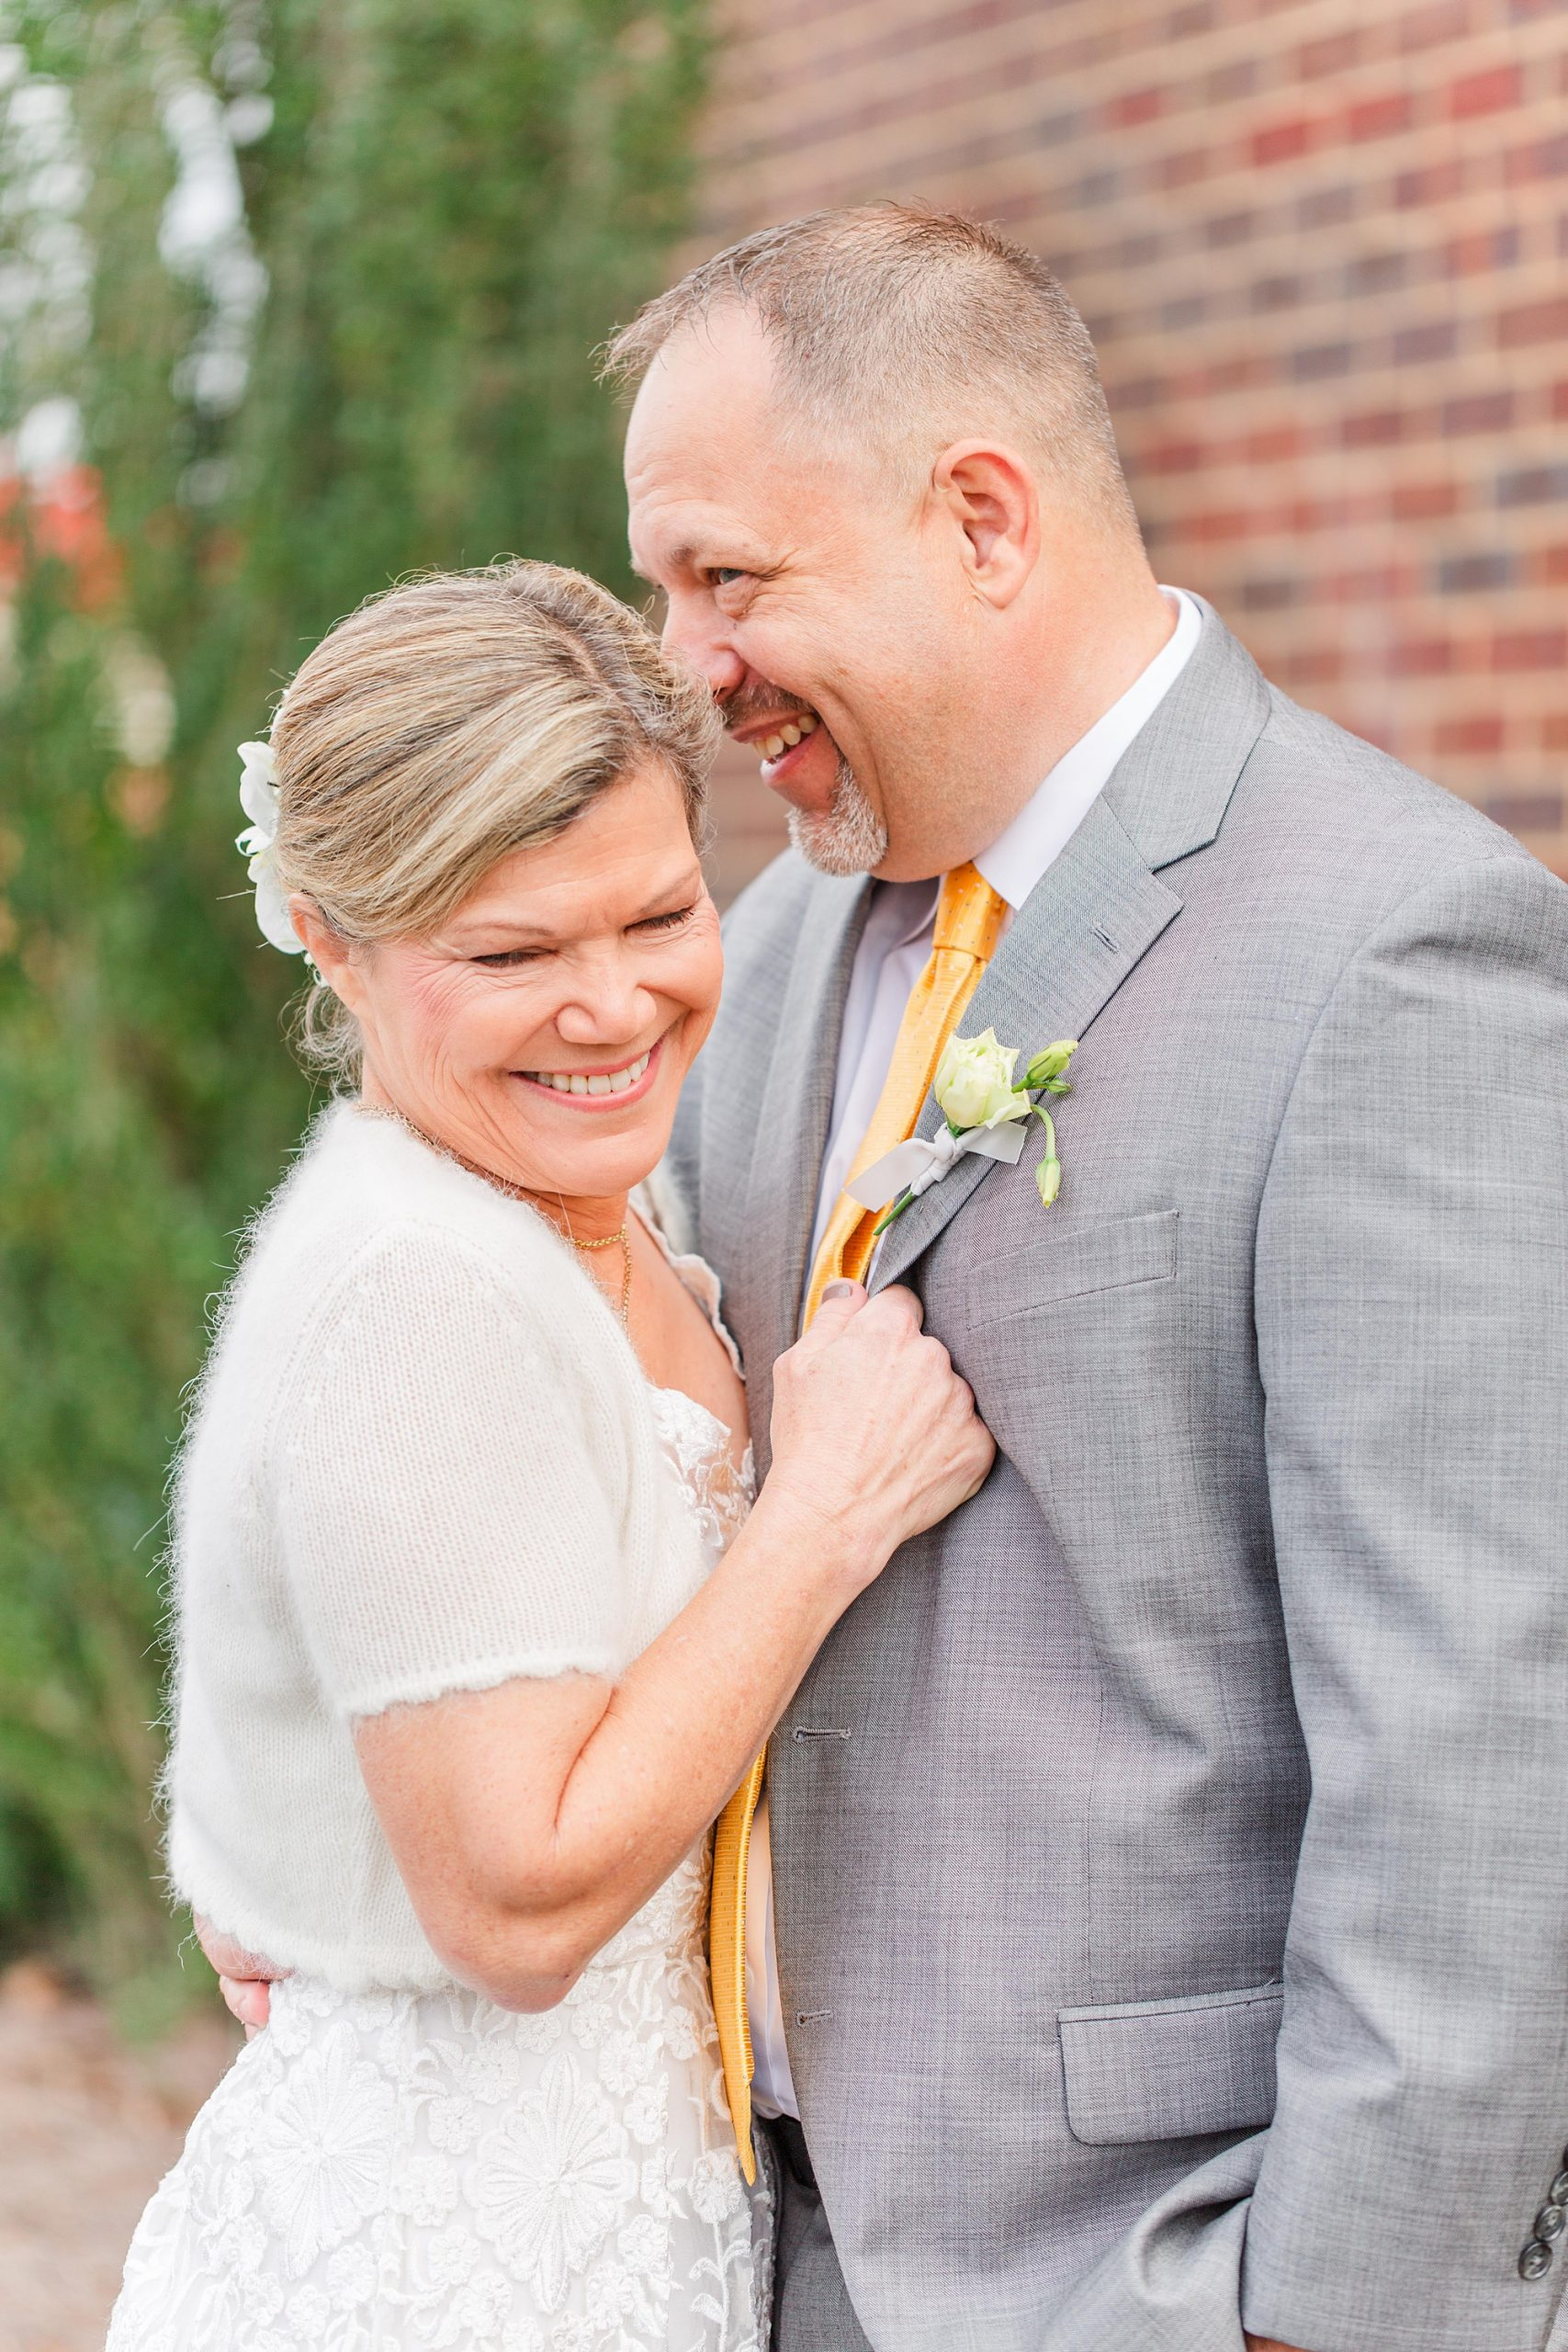 groom makes bride laugh while nuzzling forehead